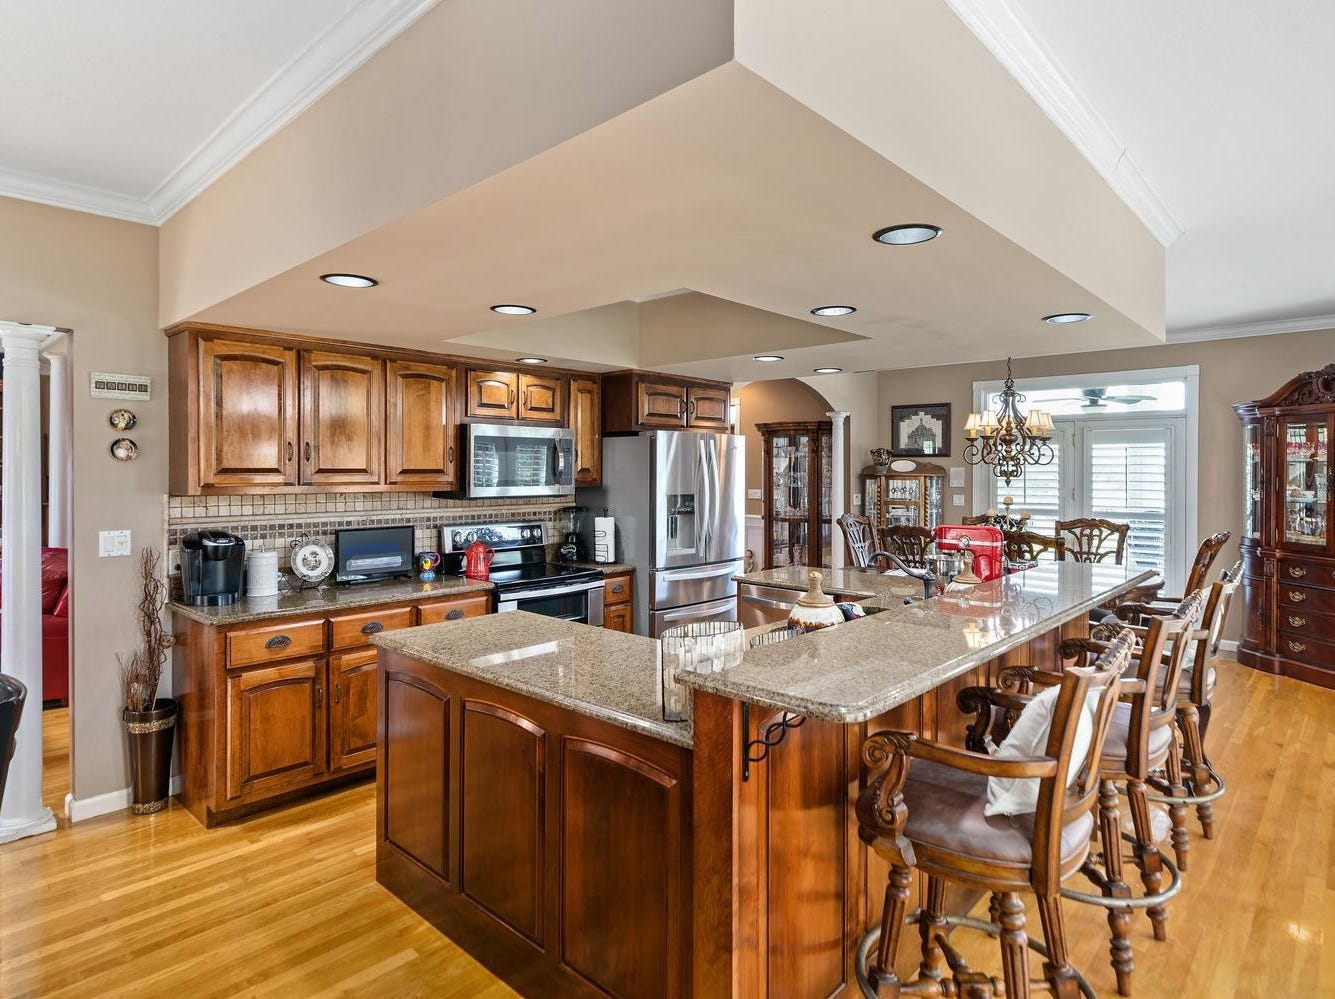 3040 Seven MileFerry Road sold for $620,000 in 2018.